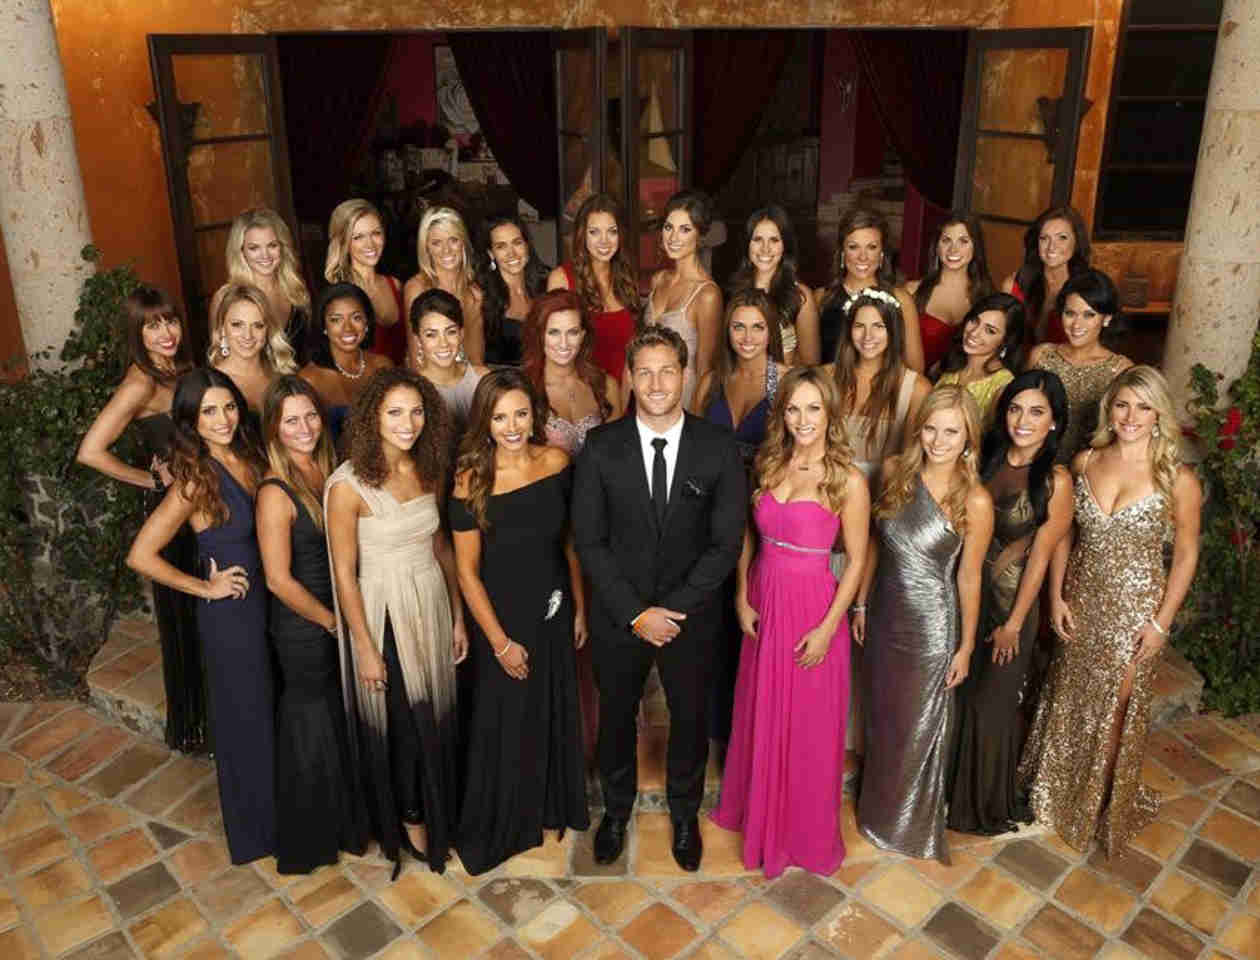 Who Went Home on The Bachelor Season 18 Premiere?